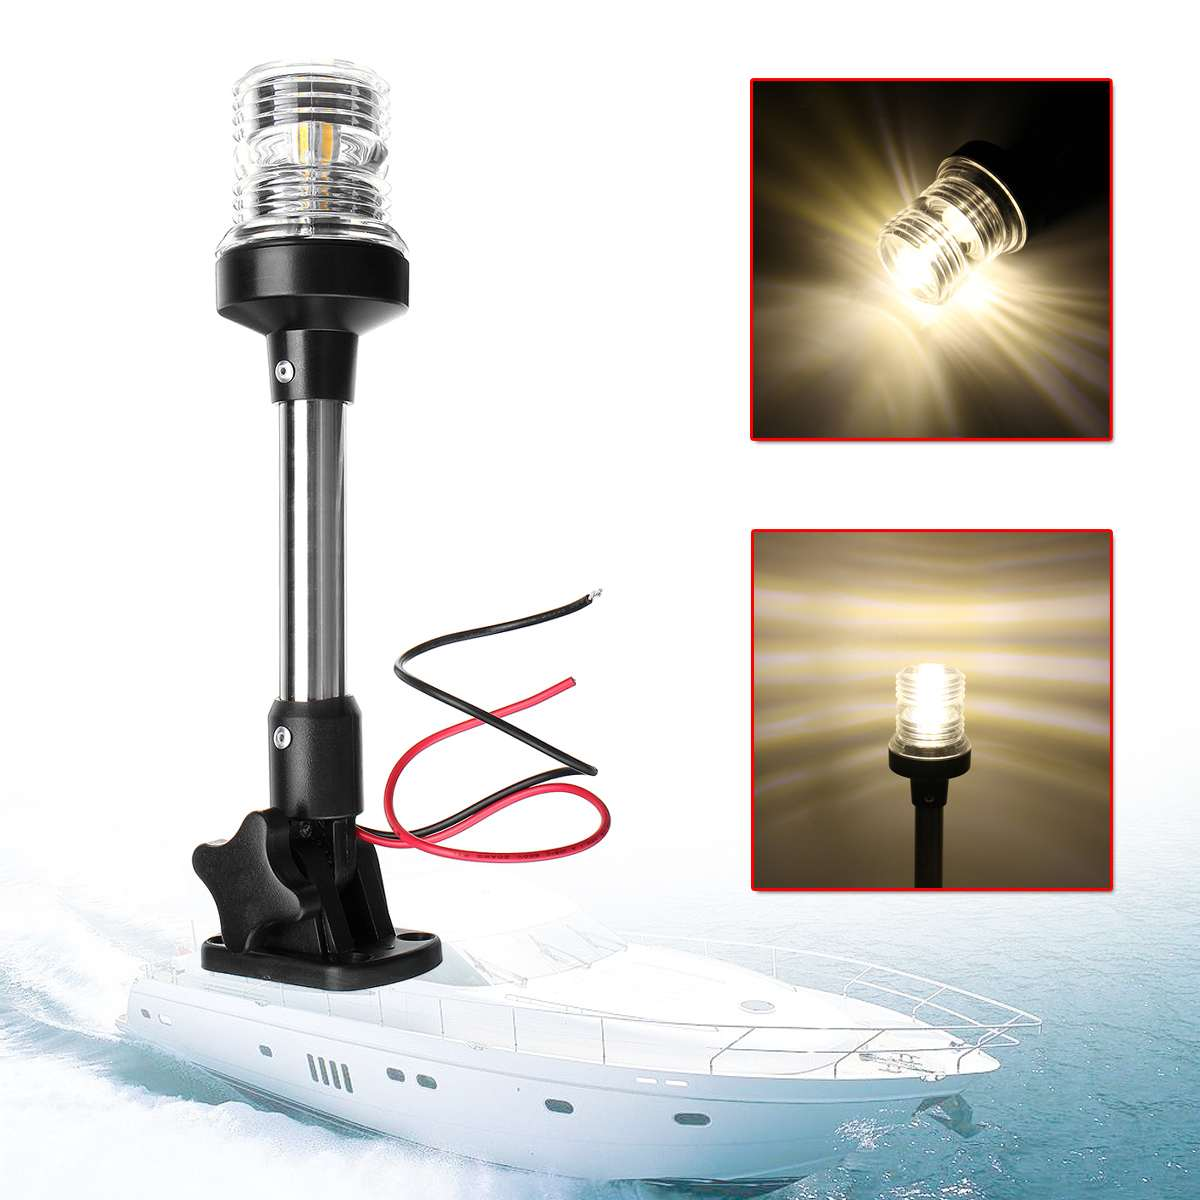 12V-24V Pactrade Marine Boat Fold Down Fold Down LED Navigation Light For Yacht Boat Stern Anchor Light Sailing Signal Light